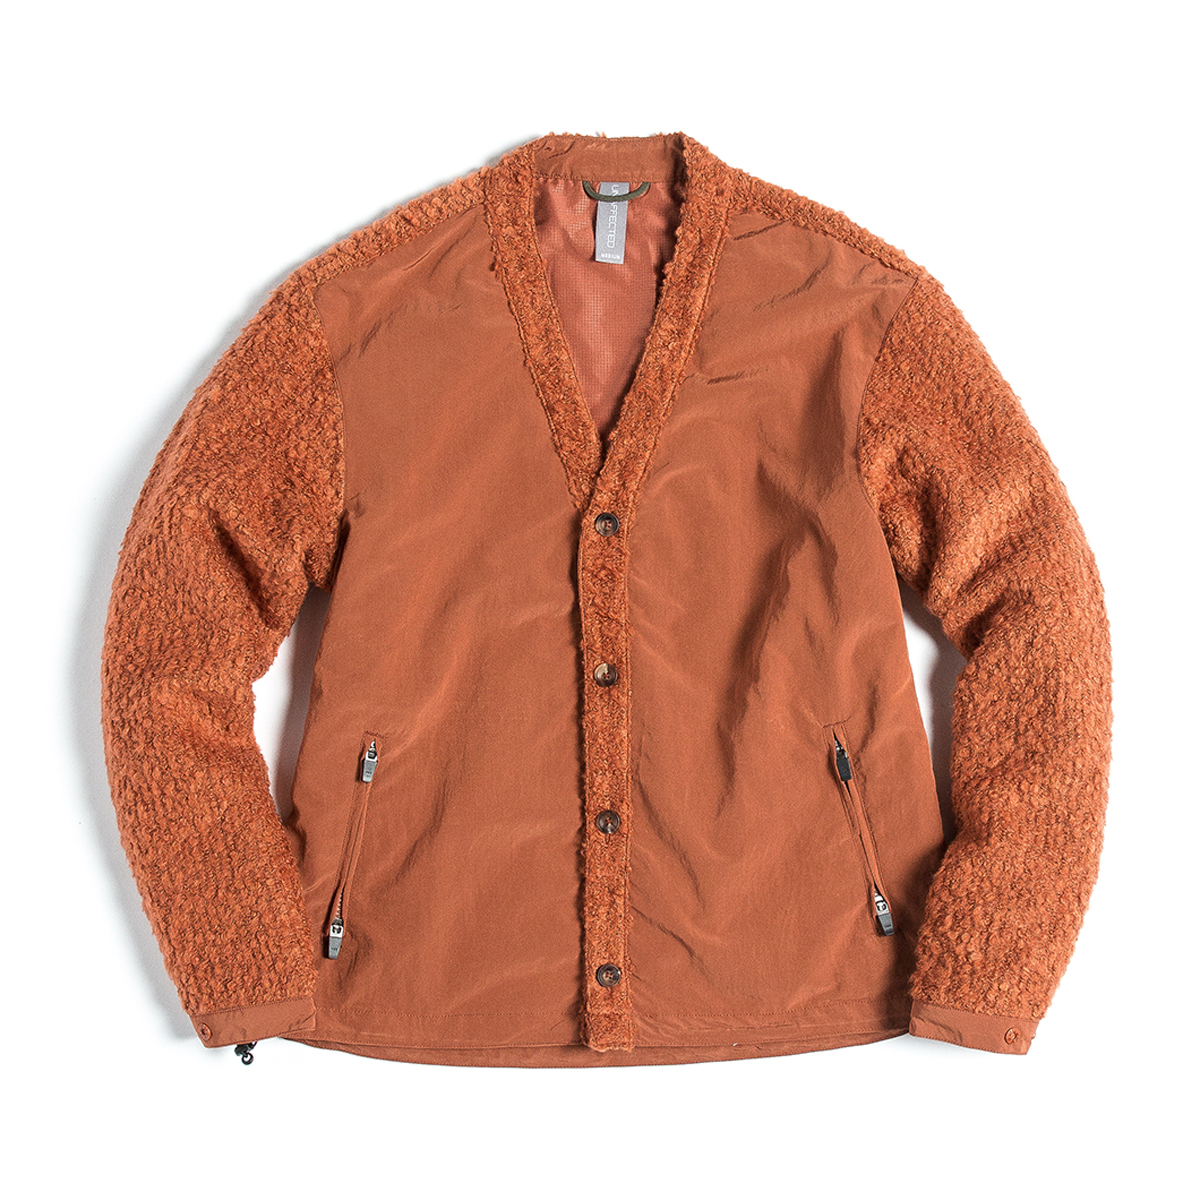 [UNAFFECTED] V-NECK CARDIGAN 'GINGER ORANGE'